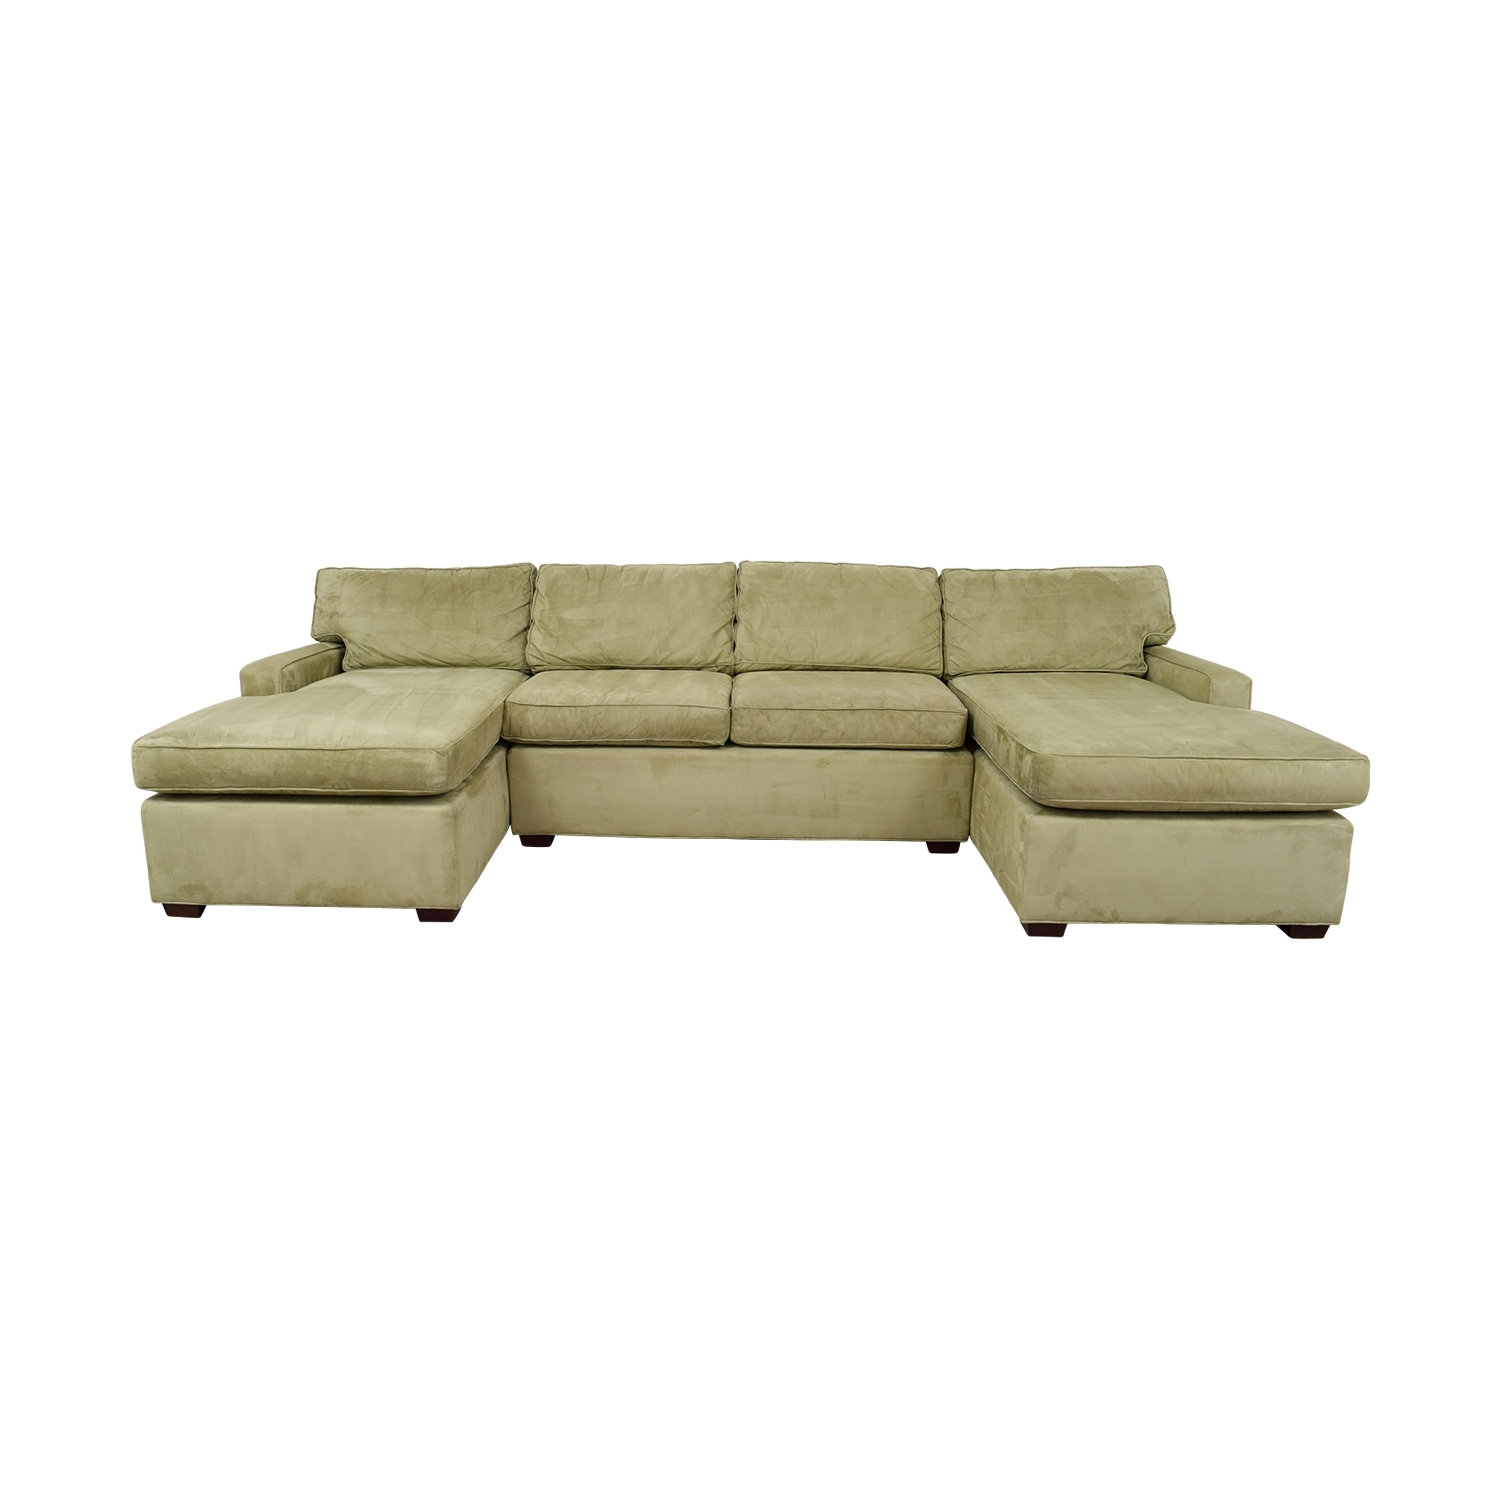 [%74% Off – Pottery Barn Pottery Barn Double Chaise Light Green Throughout Famous Pottery Barn Chaises|Pottery Barn Chaises In Most Recent 74% Off – Pottery Barn Pottery Barn Double Chaise Light Green|Trendy Pottery Barn Chaises Intended For 74% Off – Pottery Barn Pottery Barn Double Chaise Light Green|Most Current 74% Off – Pottery Barn Pottery Barn Double Chaise Light Green Pertaining To Pottery Barn Chaises%] (View 7 of 15)